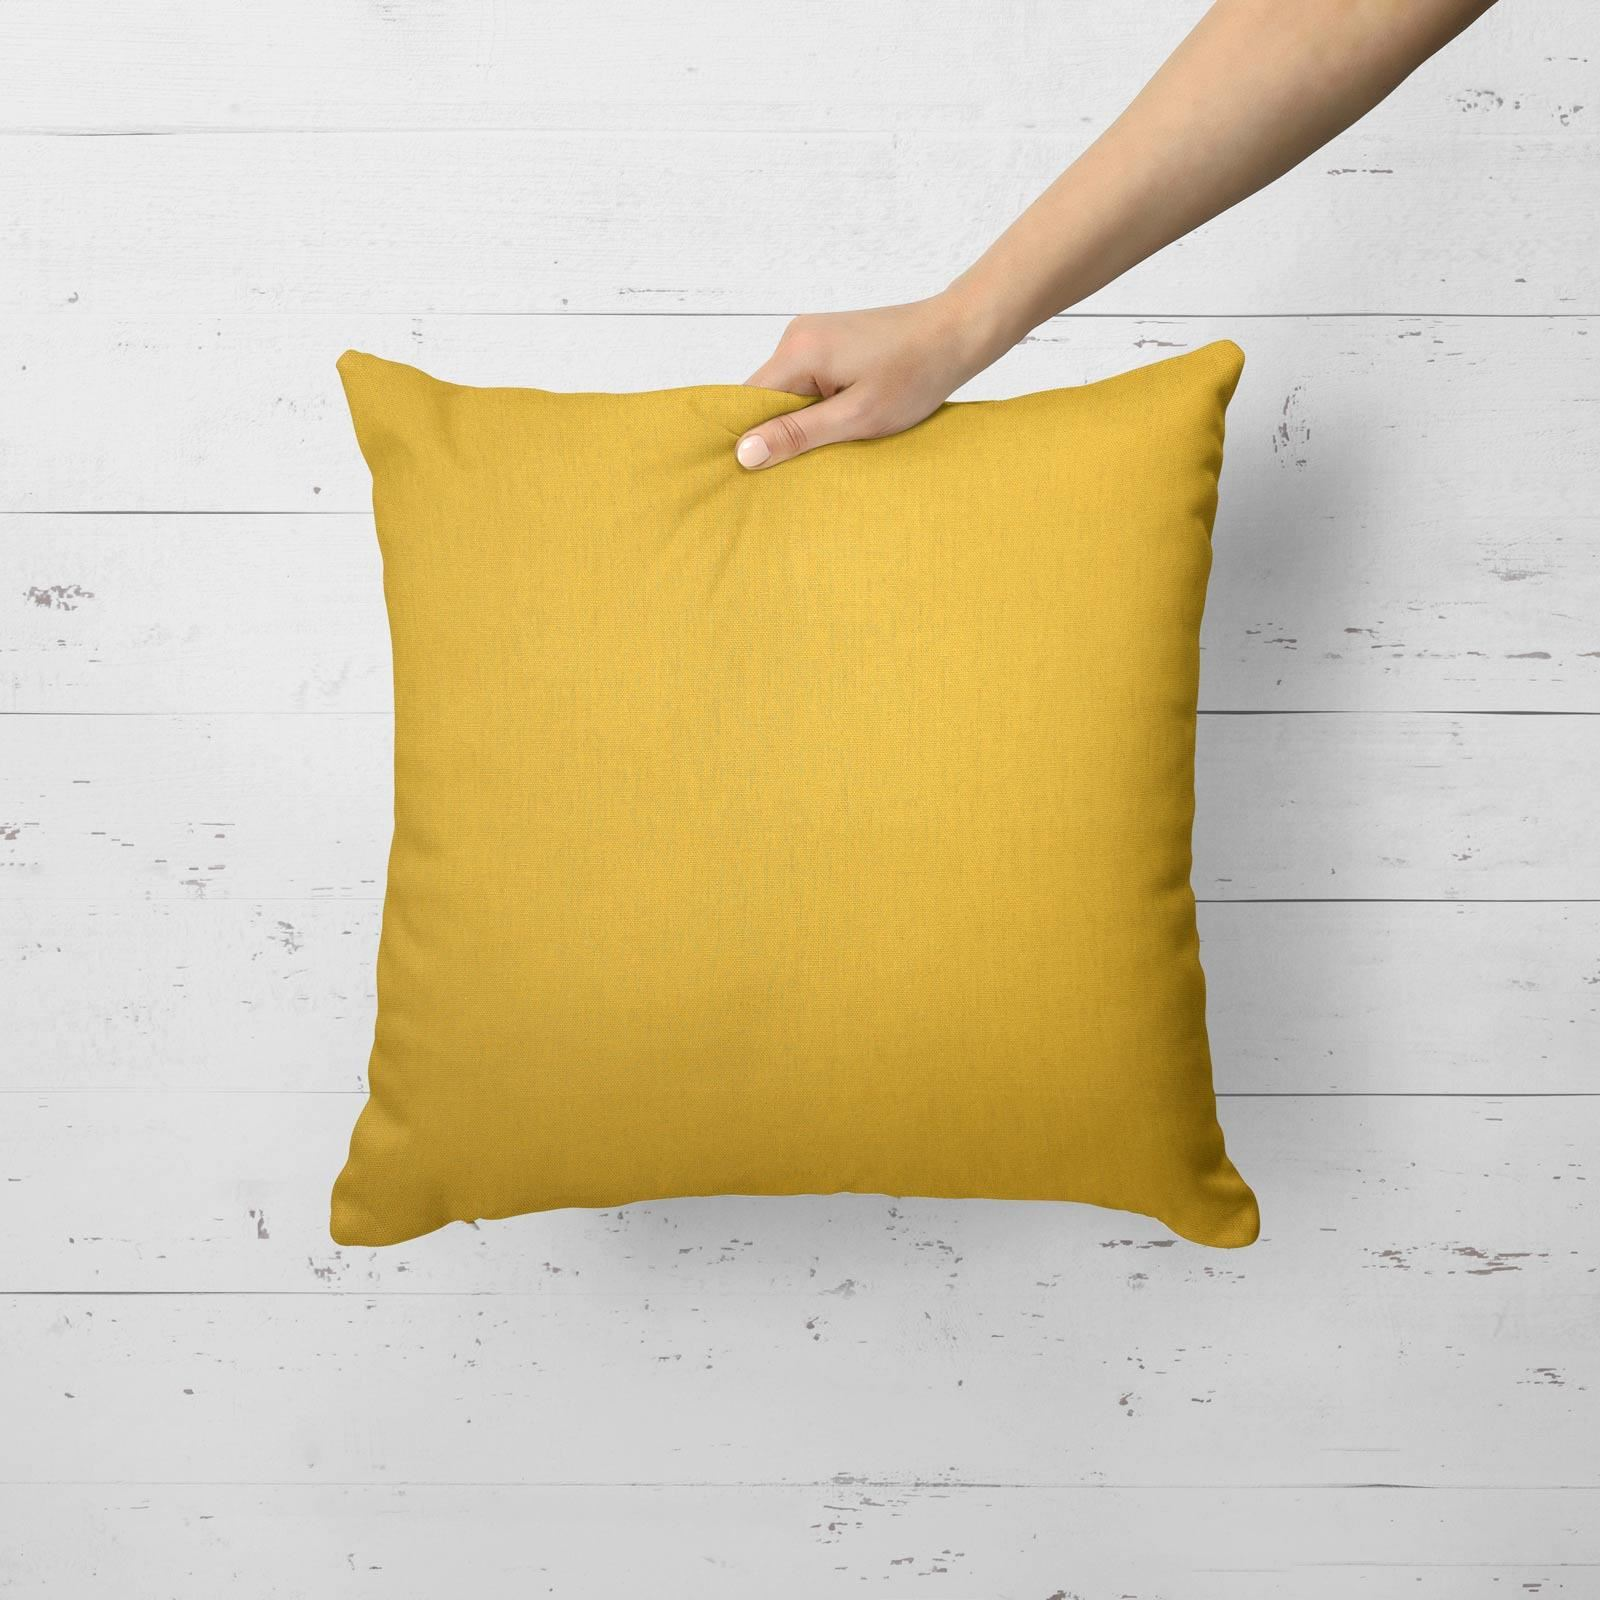 Grey-Ochre-Mustard-Cushion-Cover-Collection-17-034-18-034-Covers-Filled-Cushions thumbnail 72